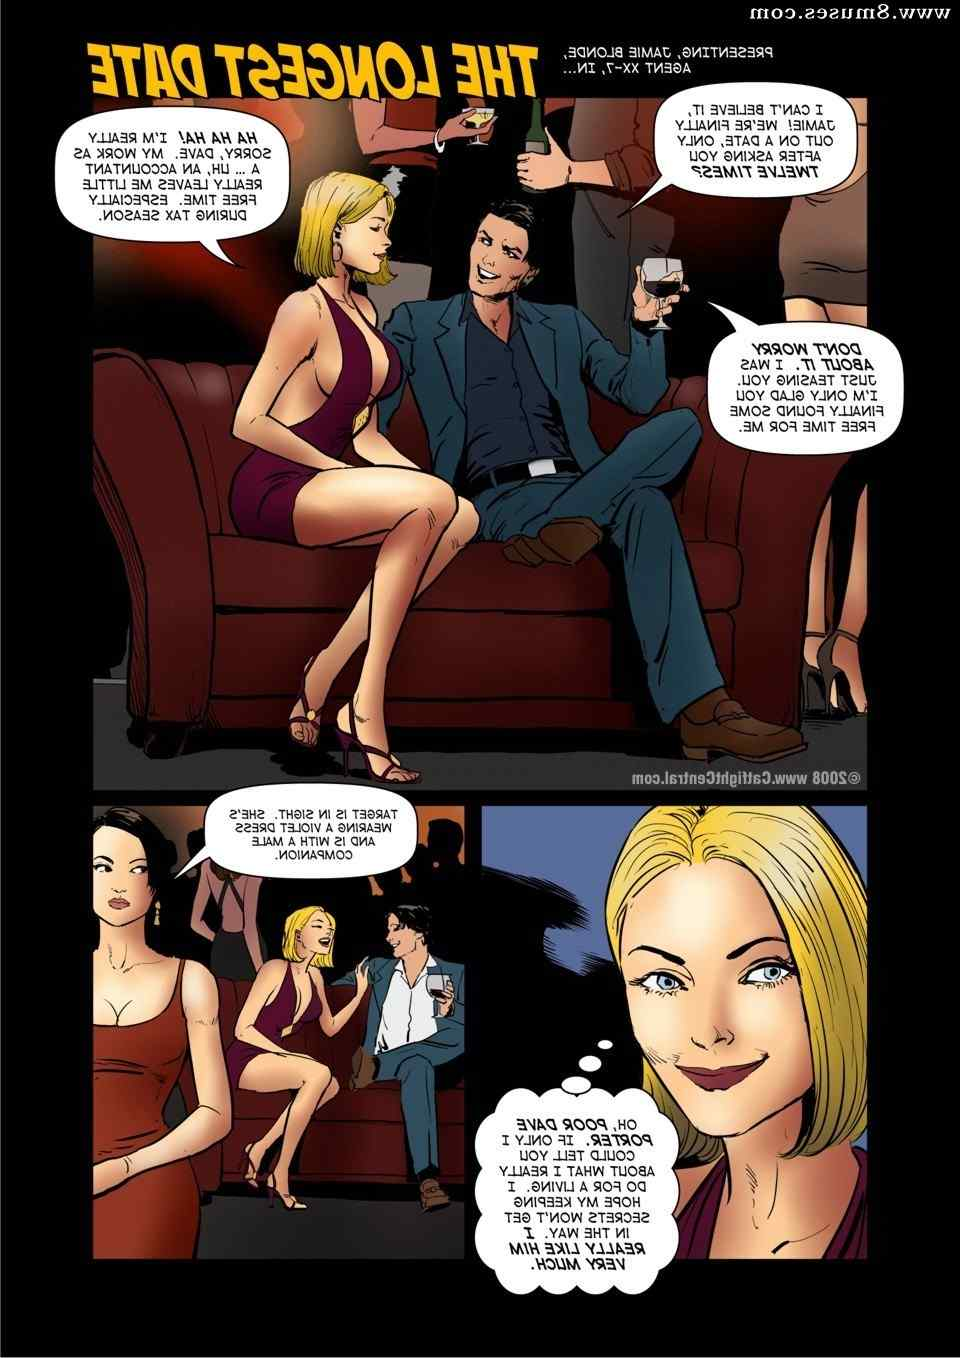 Central-Comics/Catfight-Central/Jamie-Blonde Jamie_Blonde__8muses_-_Sex_and_Porn_Comics_3.jpg